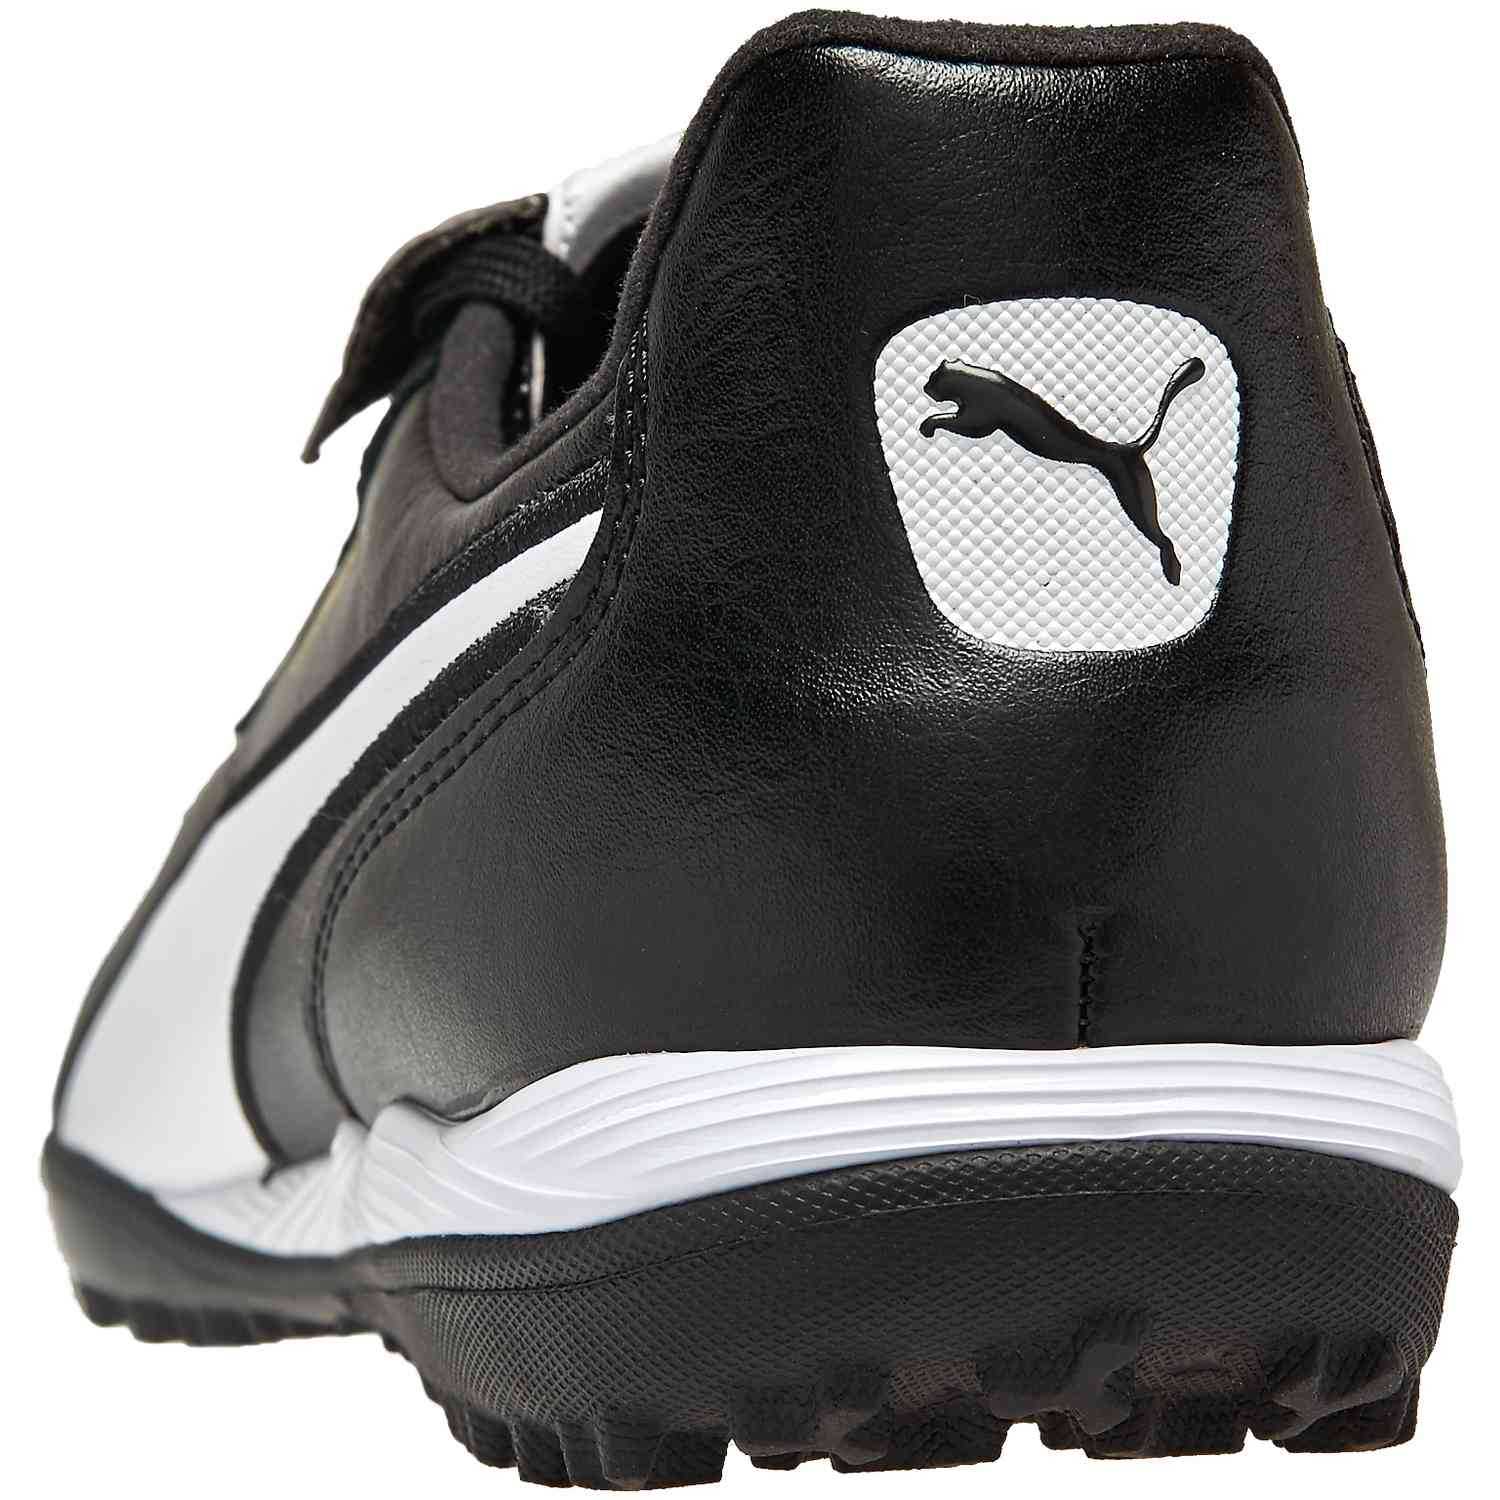 Puma King Top TT - Black - Soccer Master